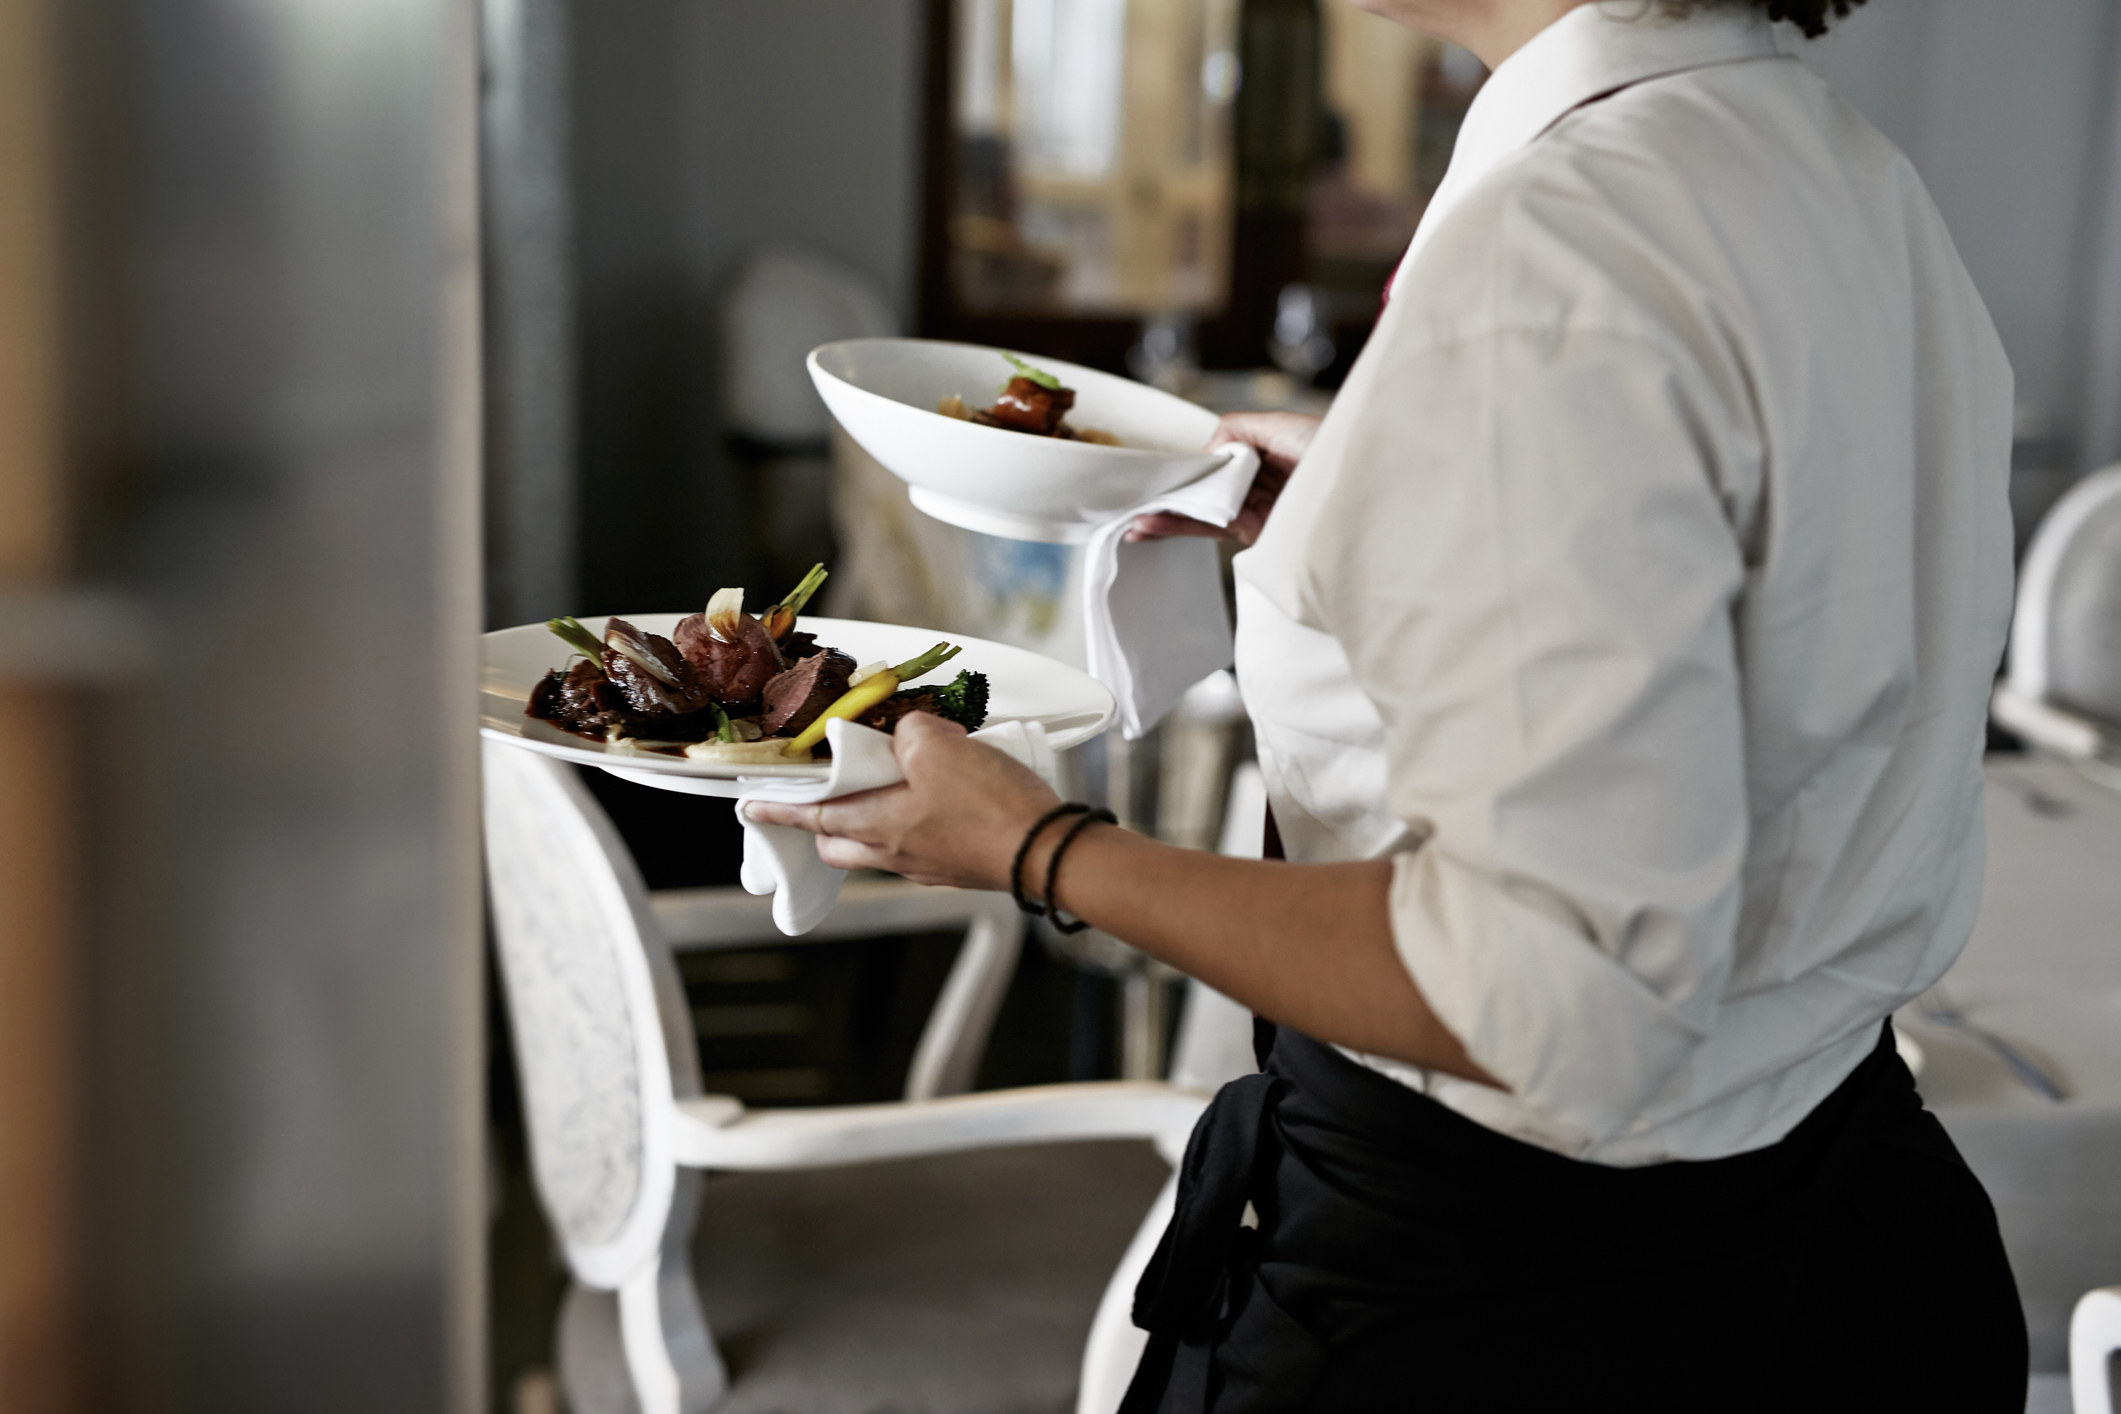 A server carries two dishes in a restaurant